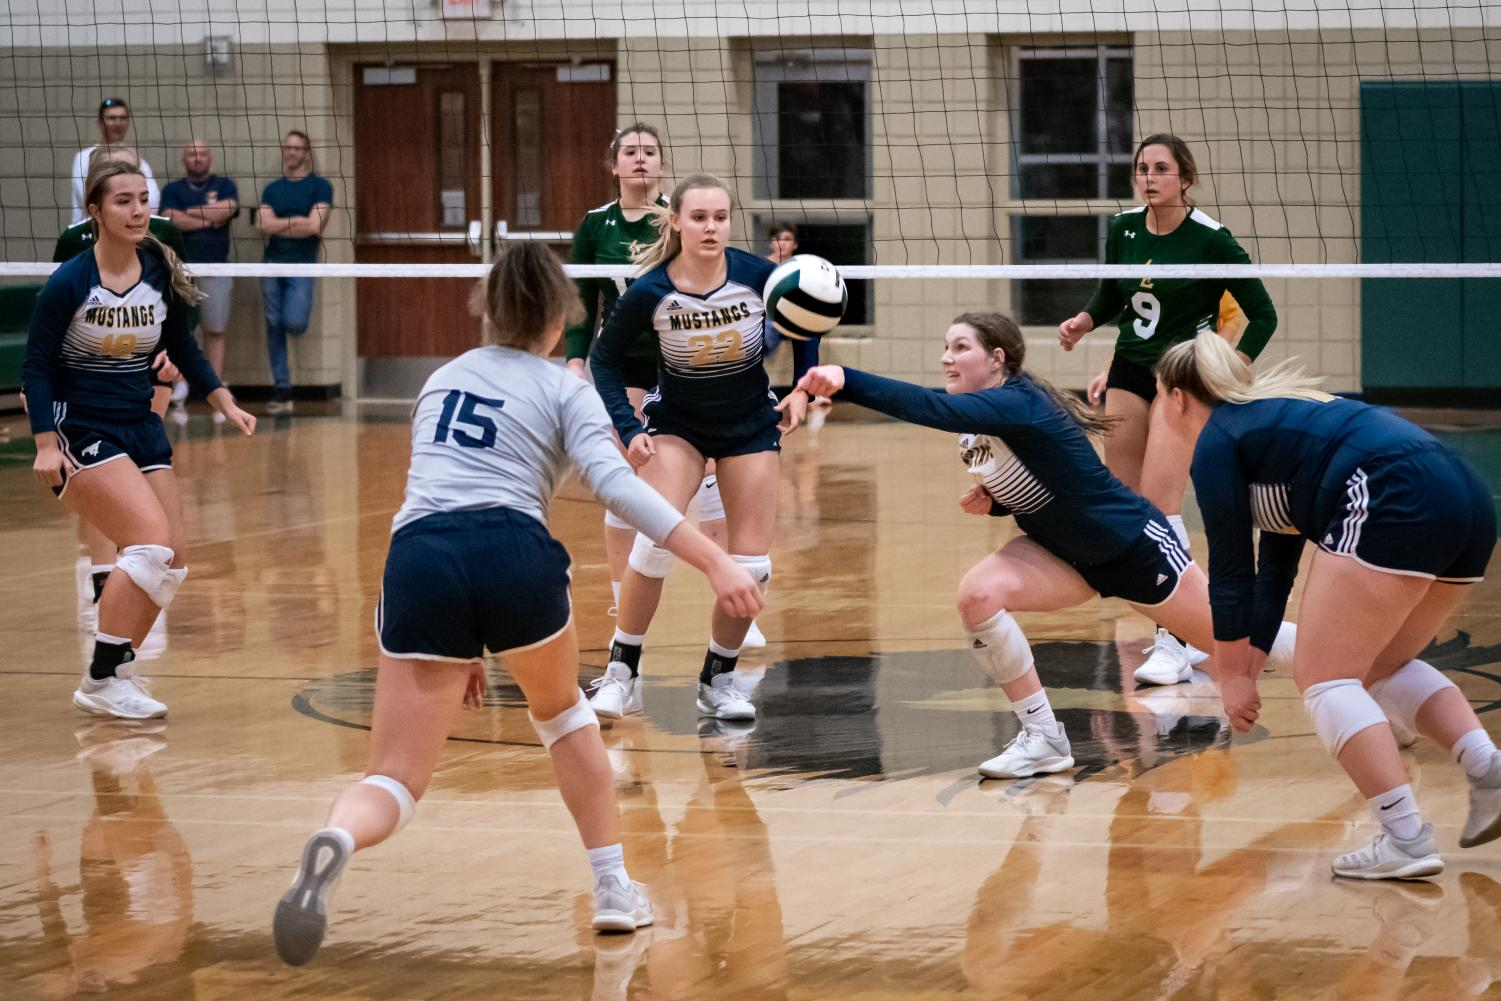 Senior captain Lauren Rose makes a dig to keep the ball in play.